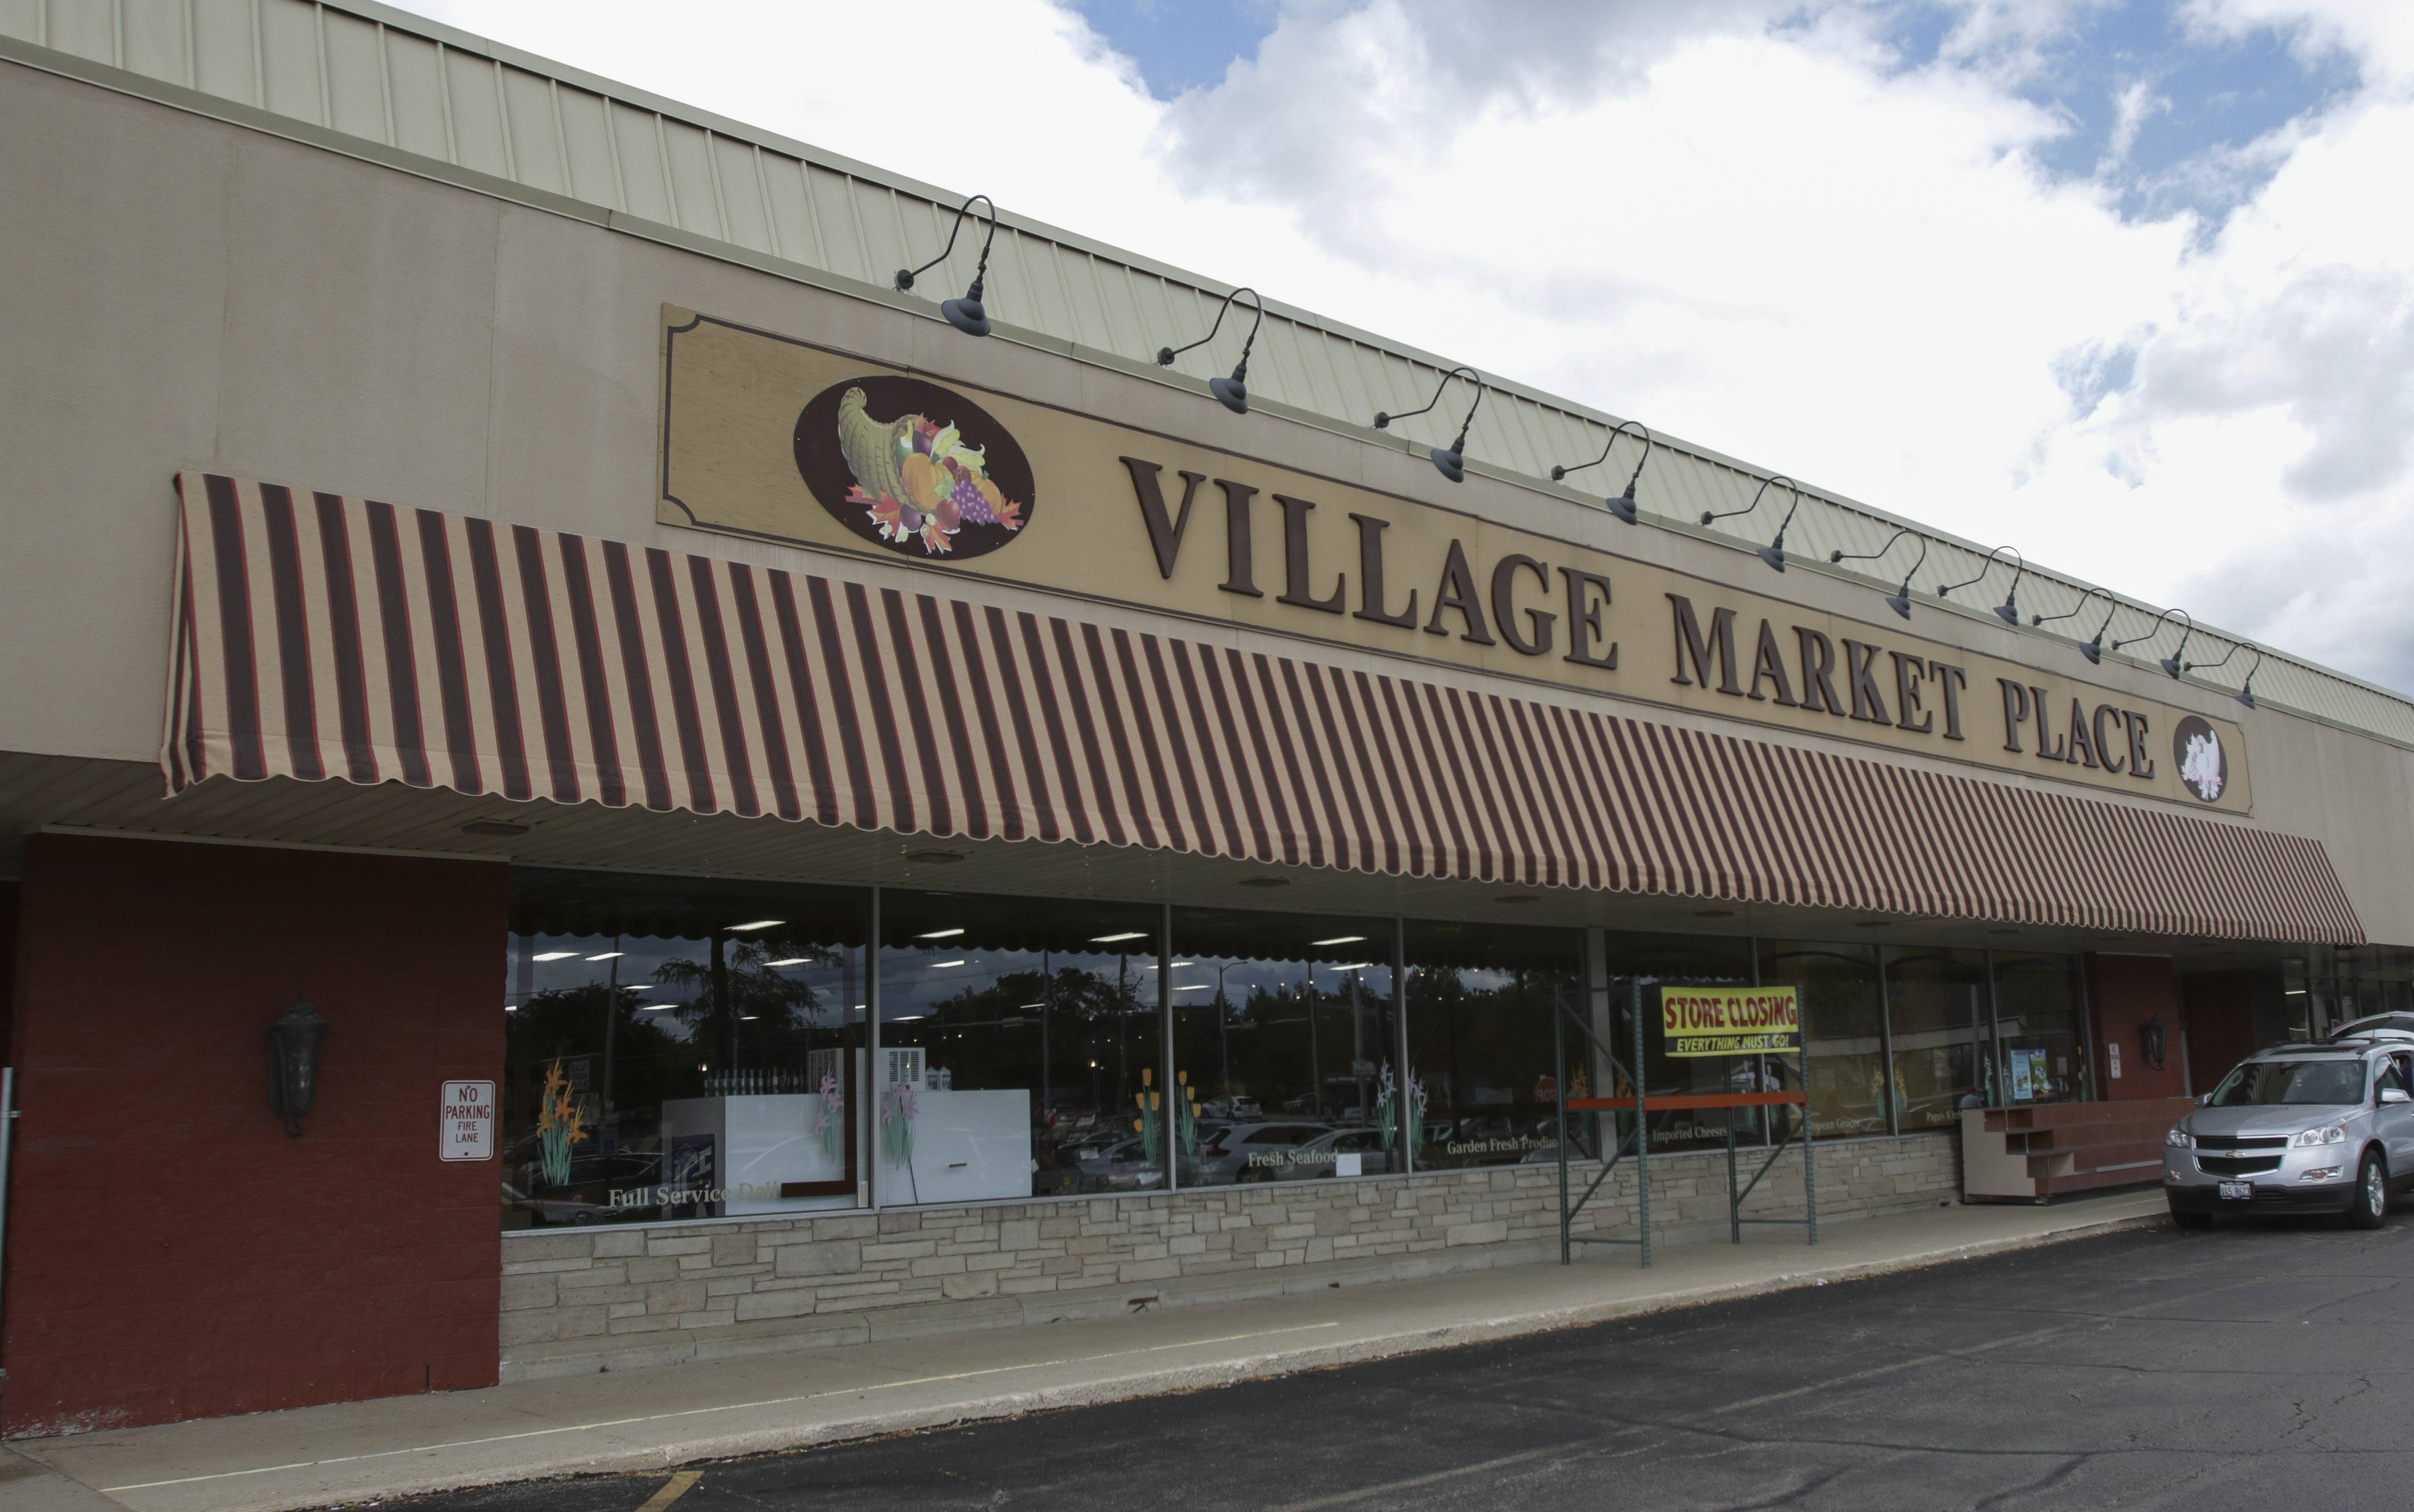 The Village Market Place grocery store in Carol Stream is preparing to close within the next two weeks.